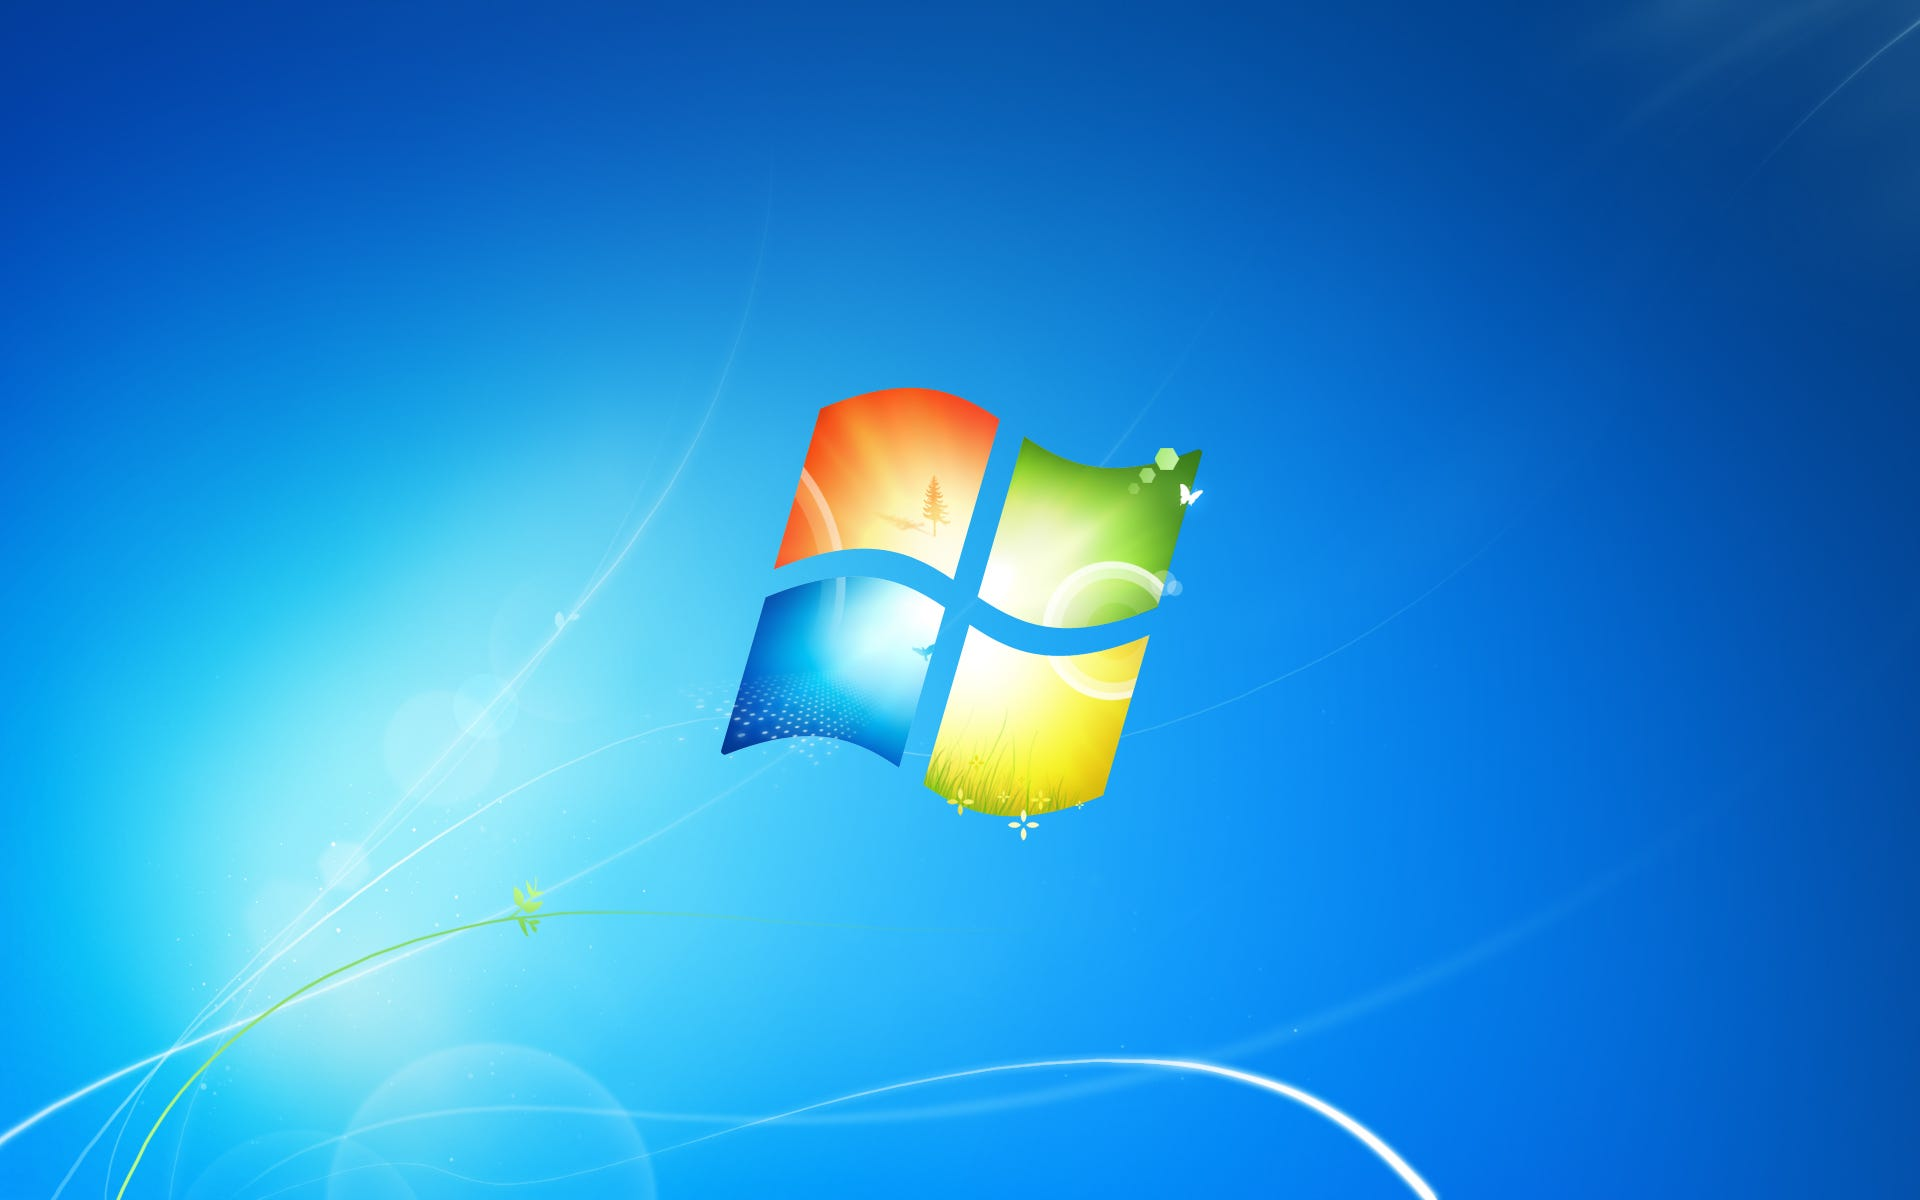 How to Make Windows 10 Look and Act More Like Windows 7 Windows 7 Classic Wallpaper